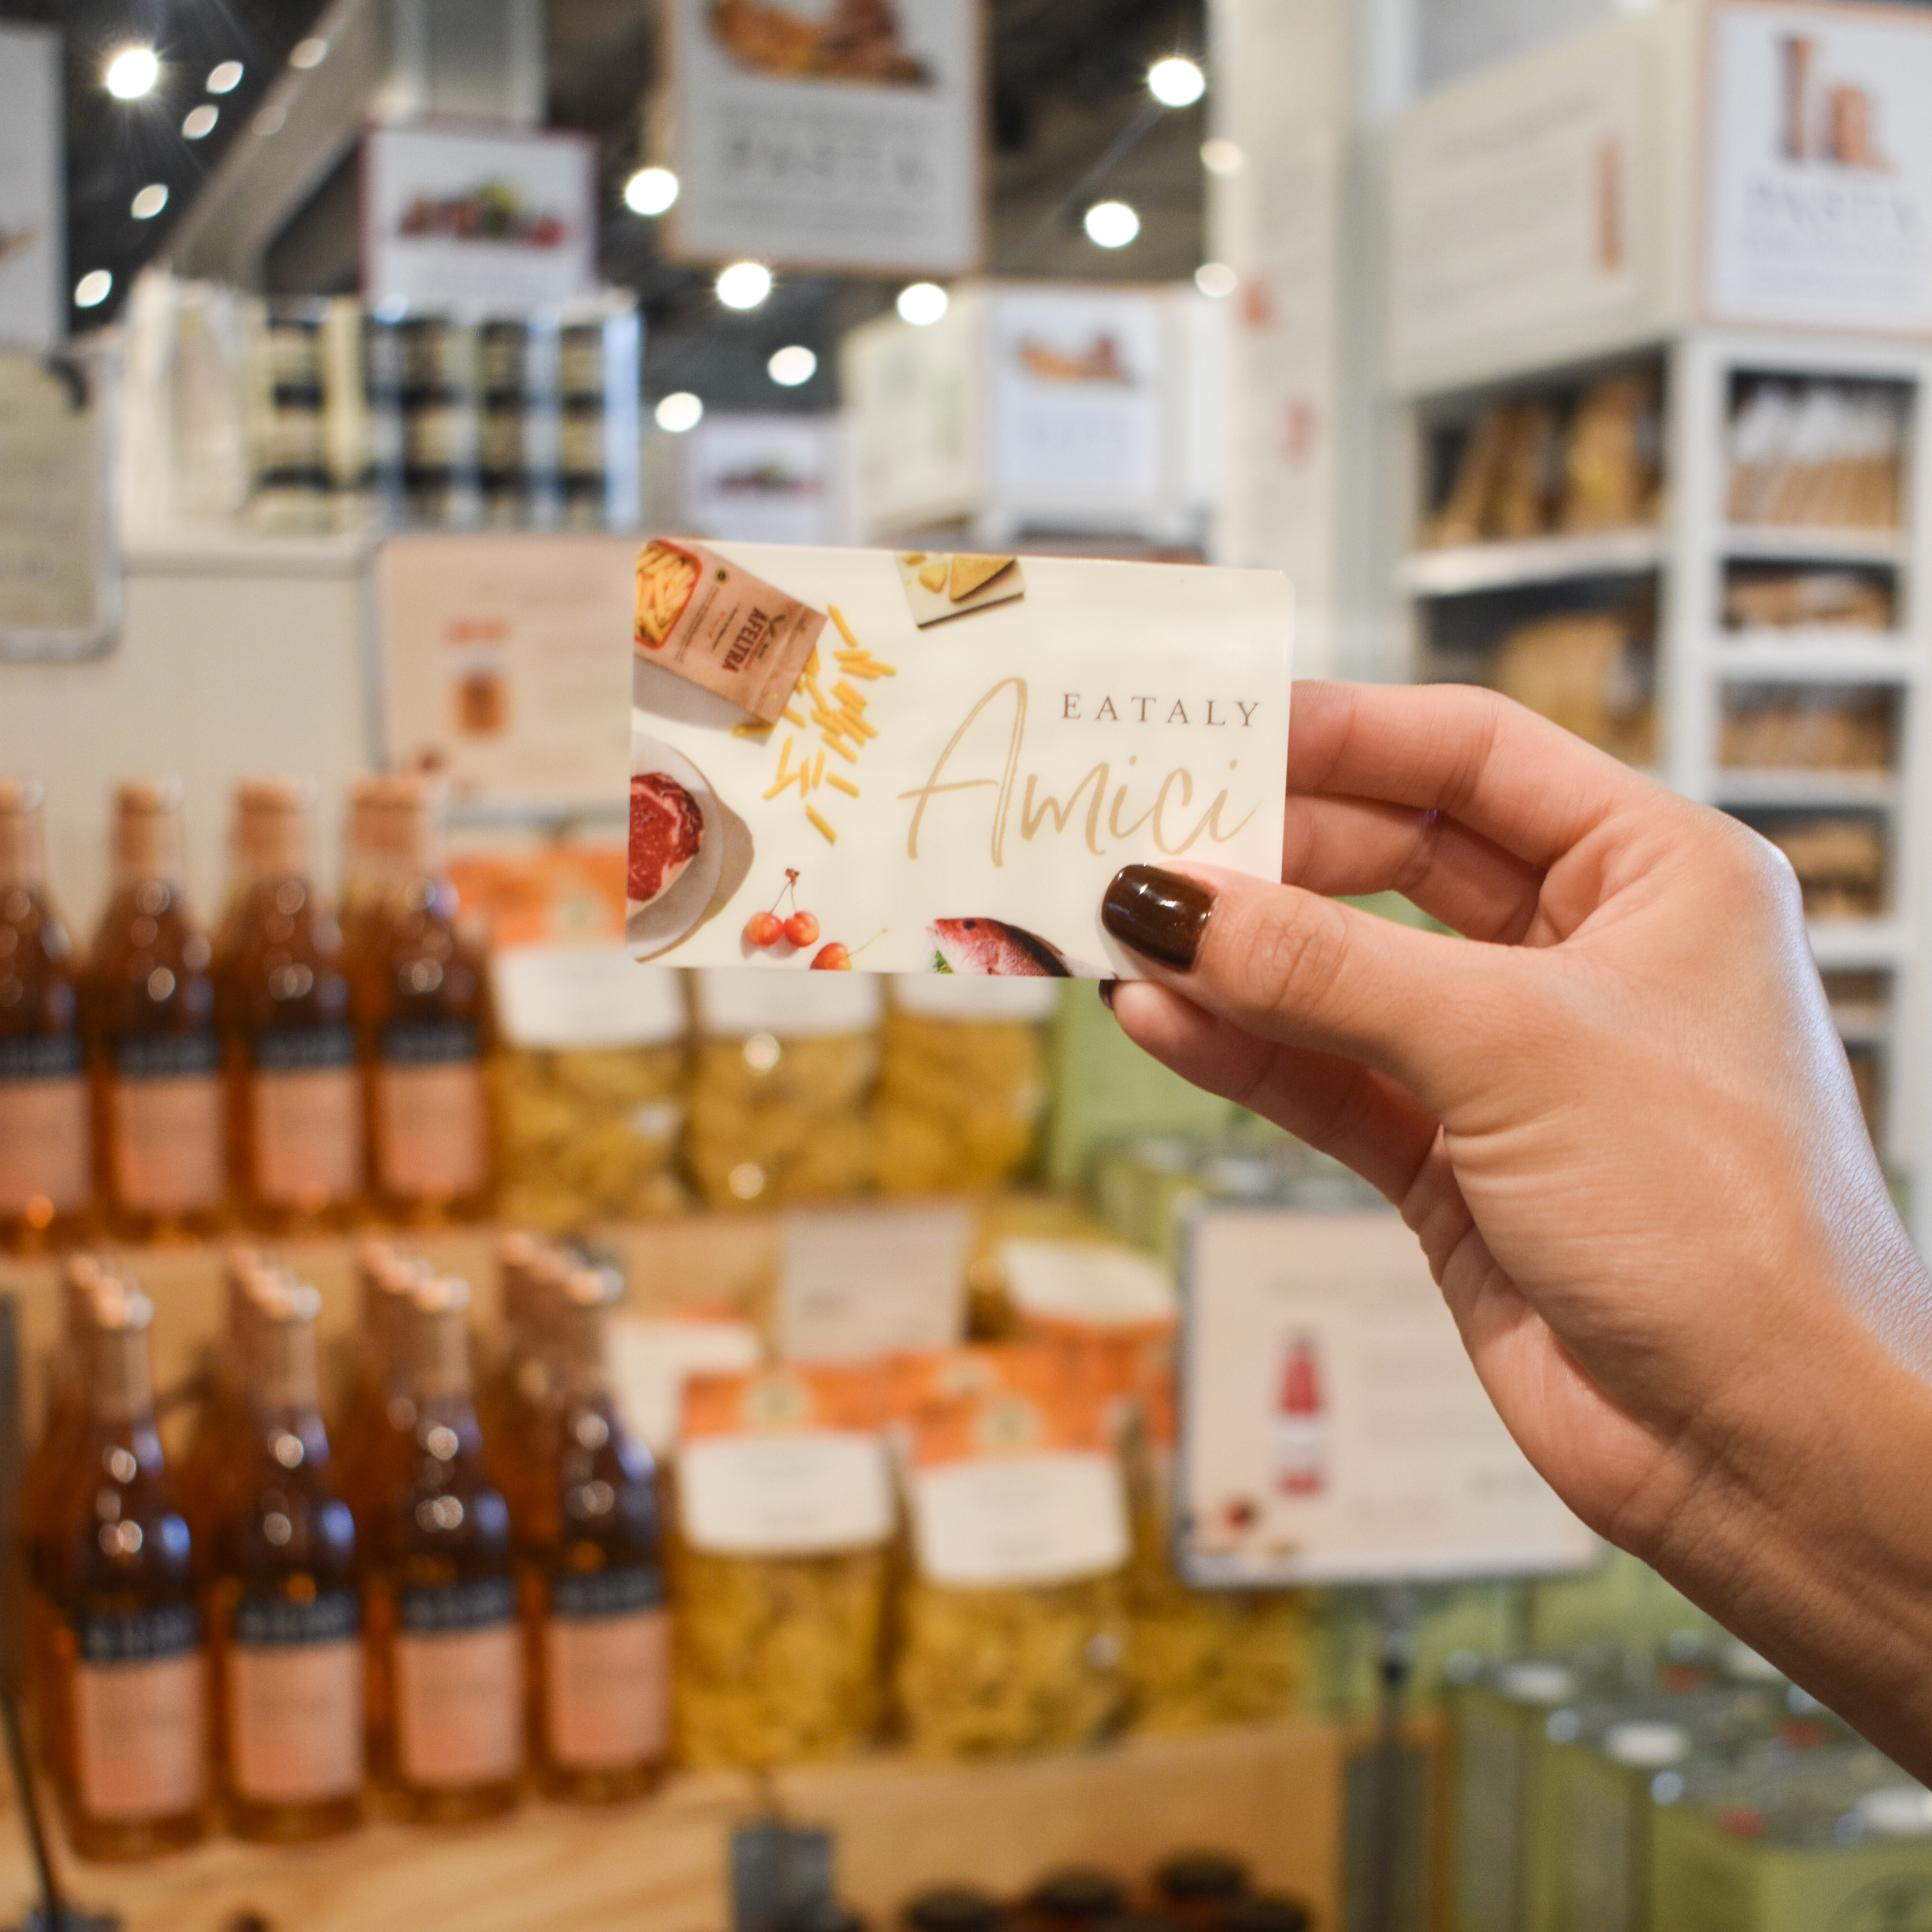 Eataly Amici Perks Program